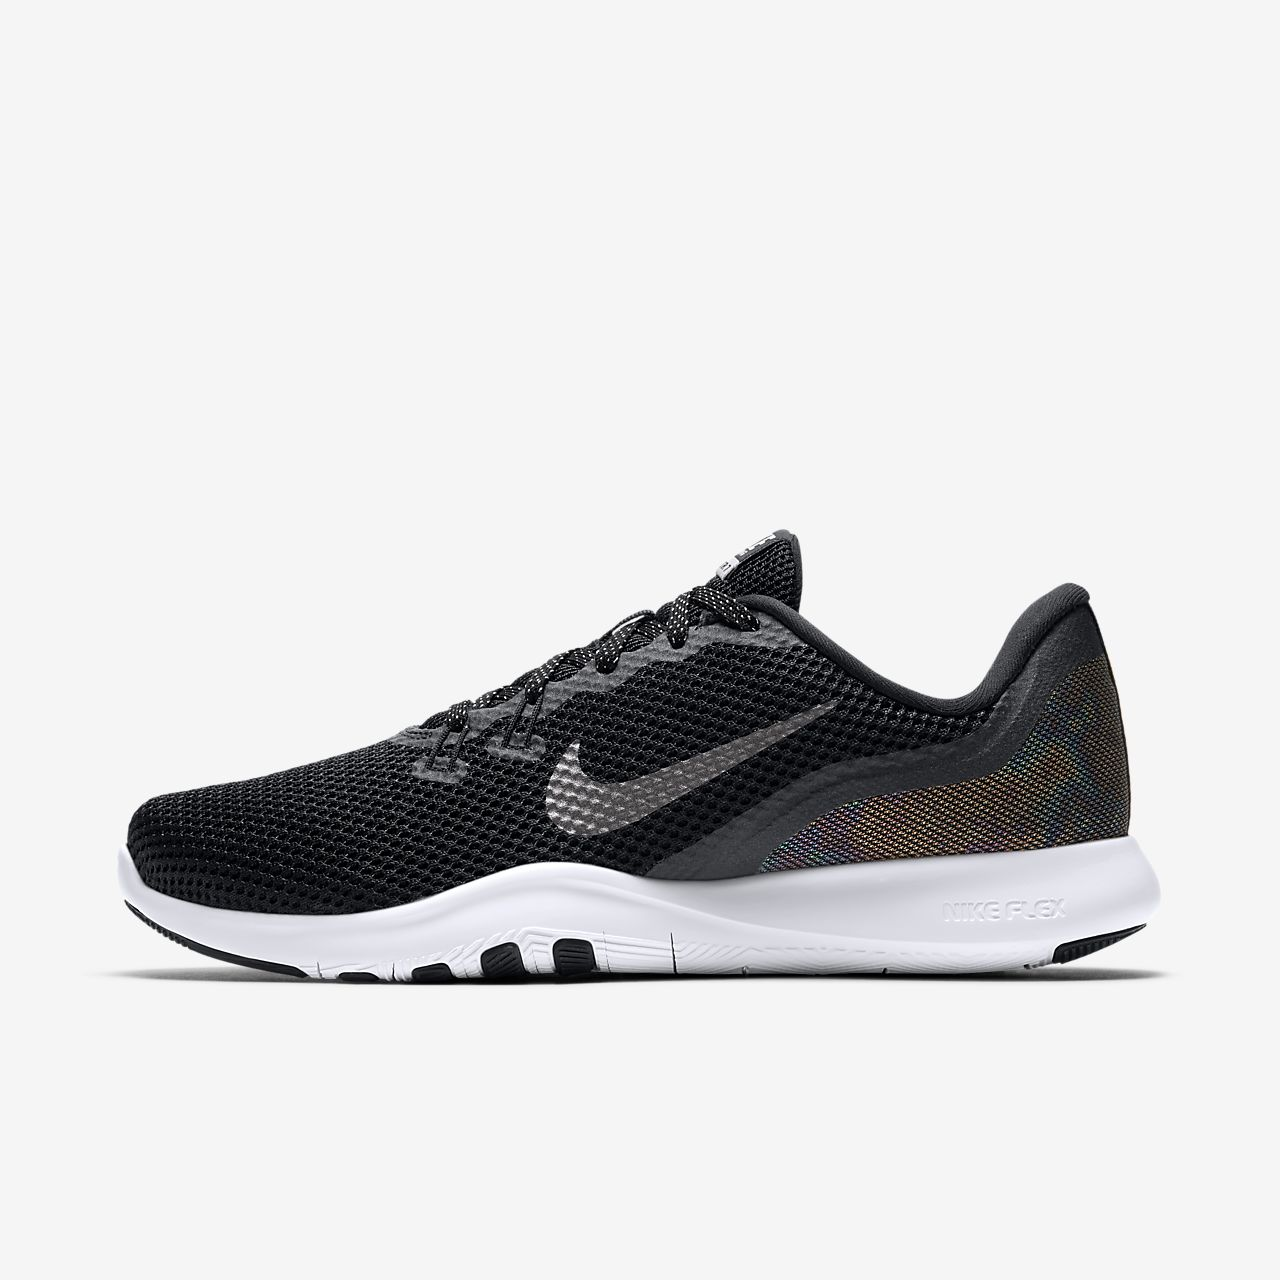 ... Nike Flex Trainer 7 Metallic Women's Training Shoe